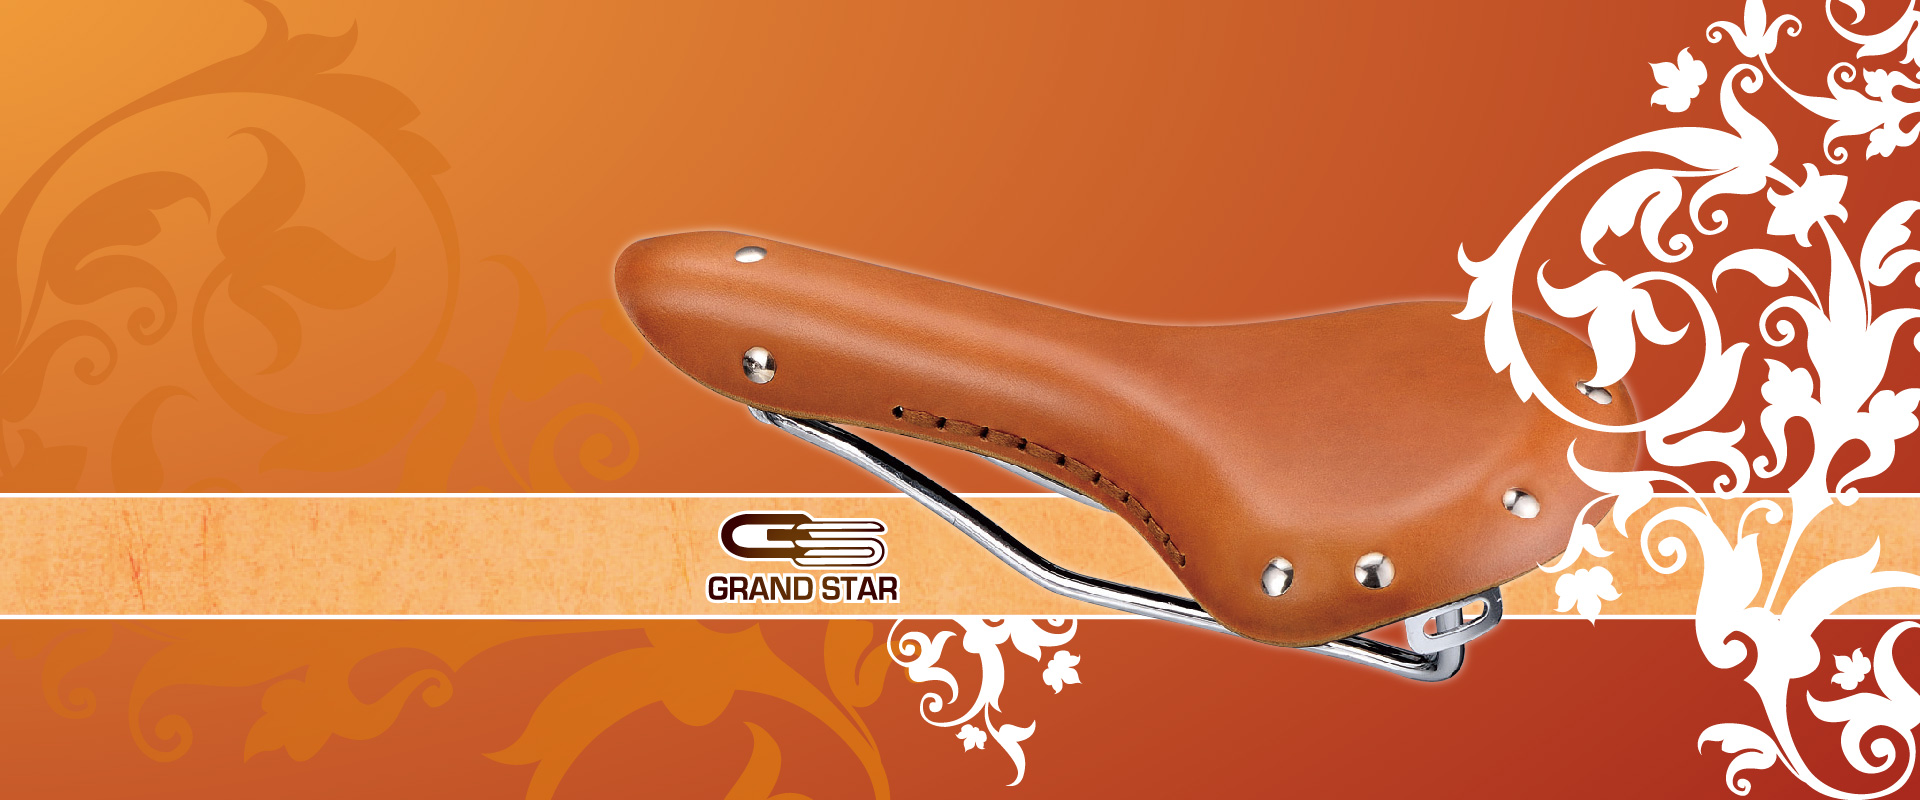 designed on your body RETRO Grand Star's egendary for classic feel, with a patented production, dedication and professionalism, combined with hand-made textured insist, are not sloppy in every detail, so that each finished product never deformation. Cushion brand of classic leading brands. Demonstrate skills, learning along the carefully manufactured using traditional techniques, so that every seat is filled with unique hand-made feel and temperature, immediately has a unique personal taste of retro fashion items for your car.